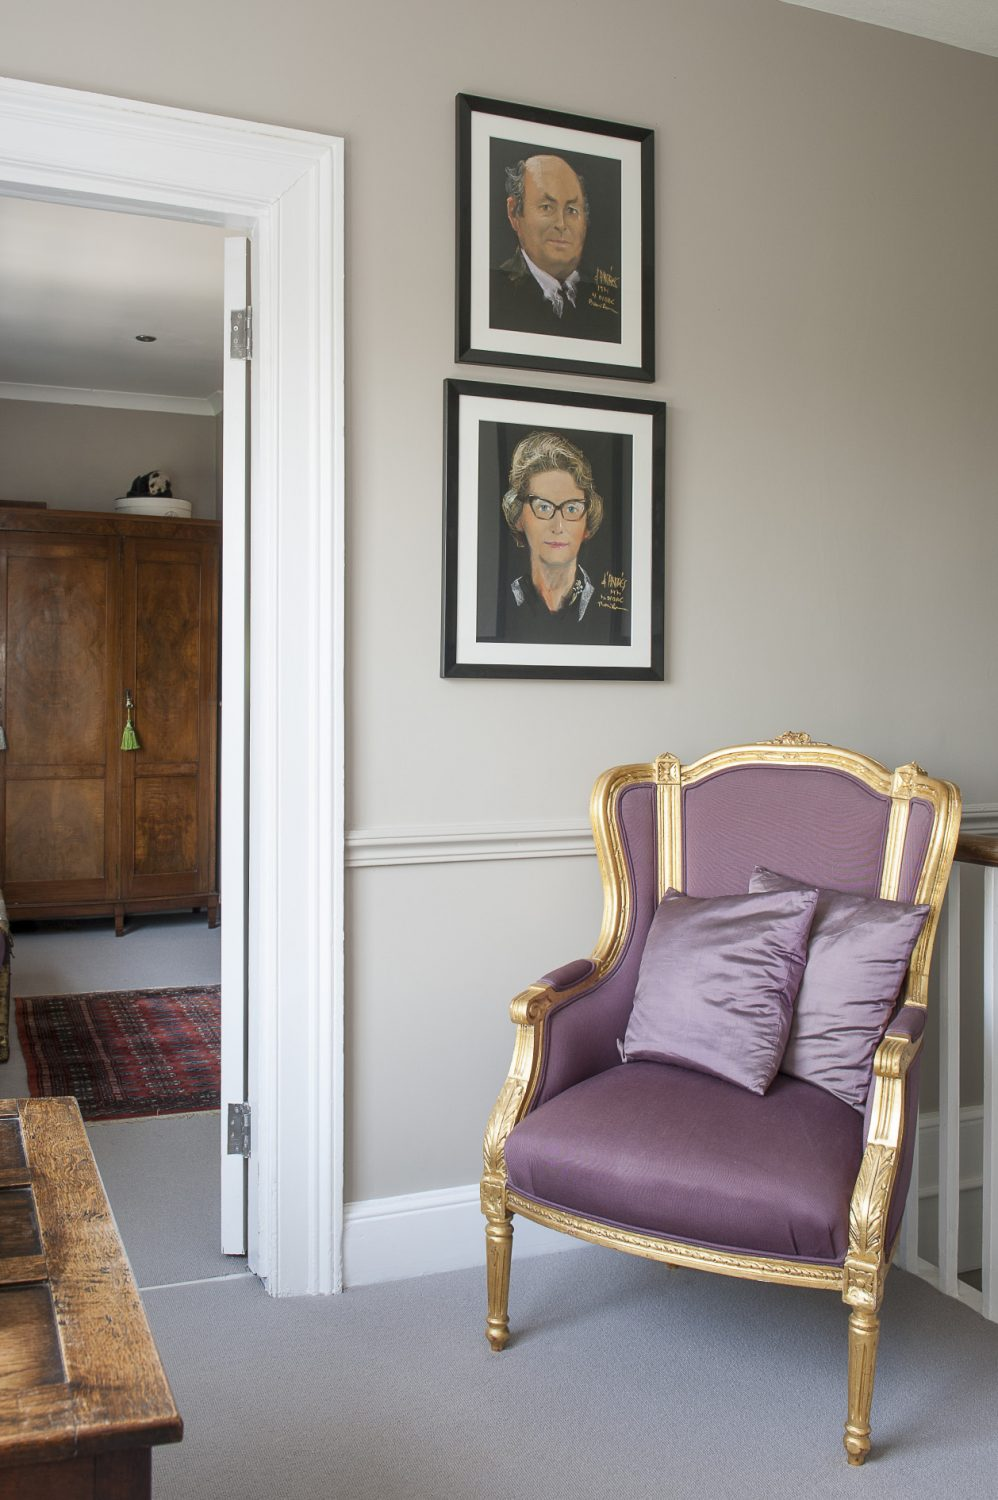 Chalk pastel depictions of Simon's grandparents, outside the master bedroom suite, add a personal touch